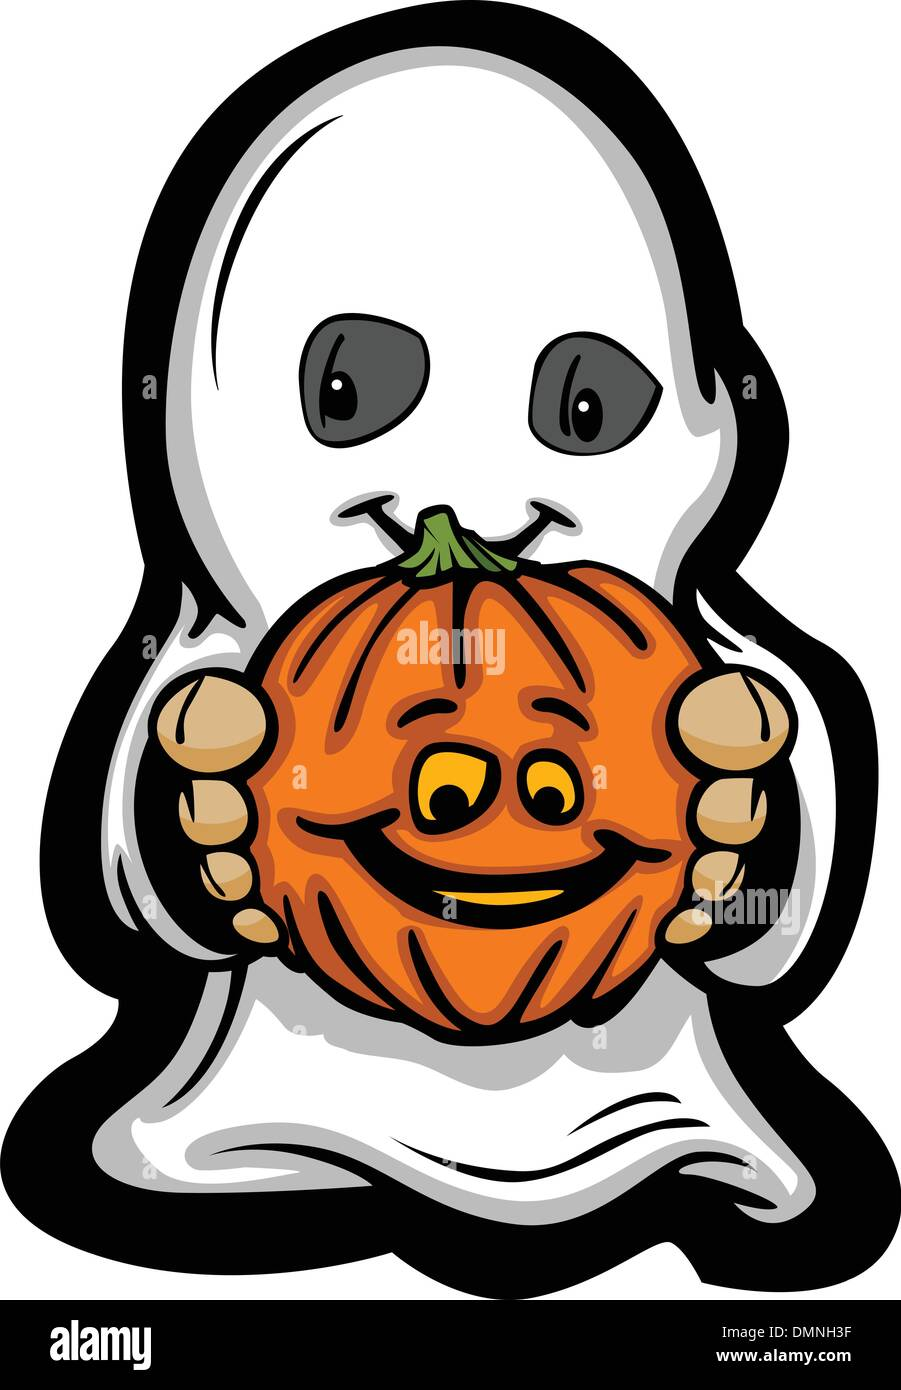 Friendly Ghost Stock Photos & Friendly Ghost Stock Images ...